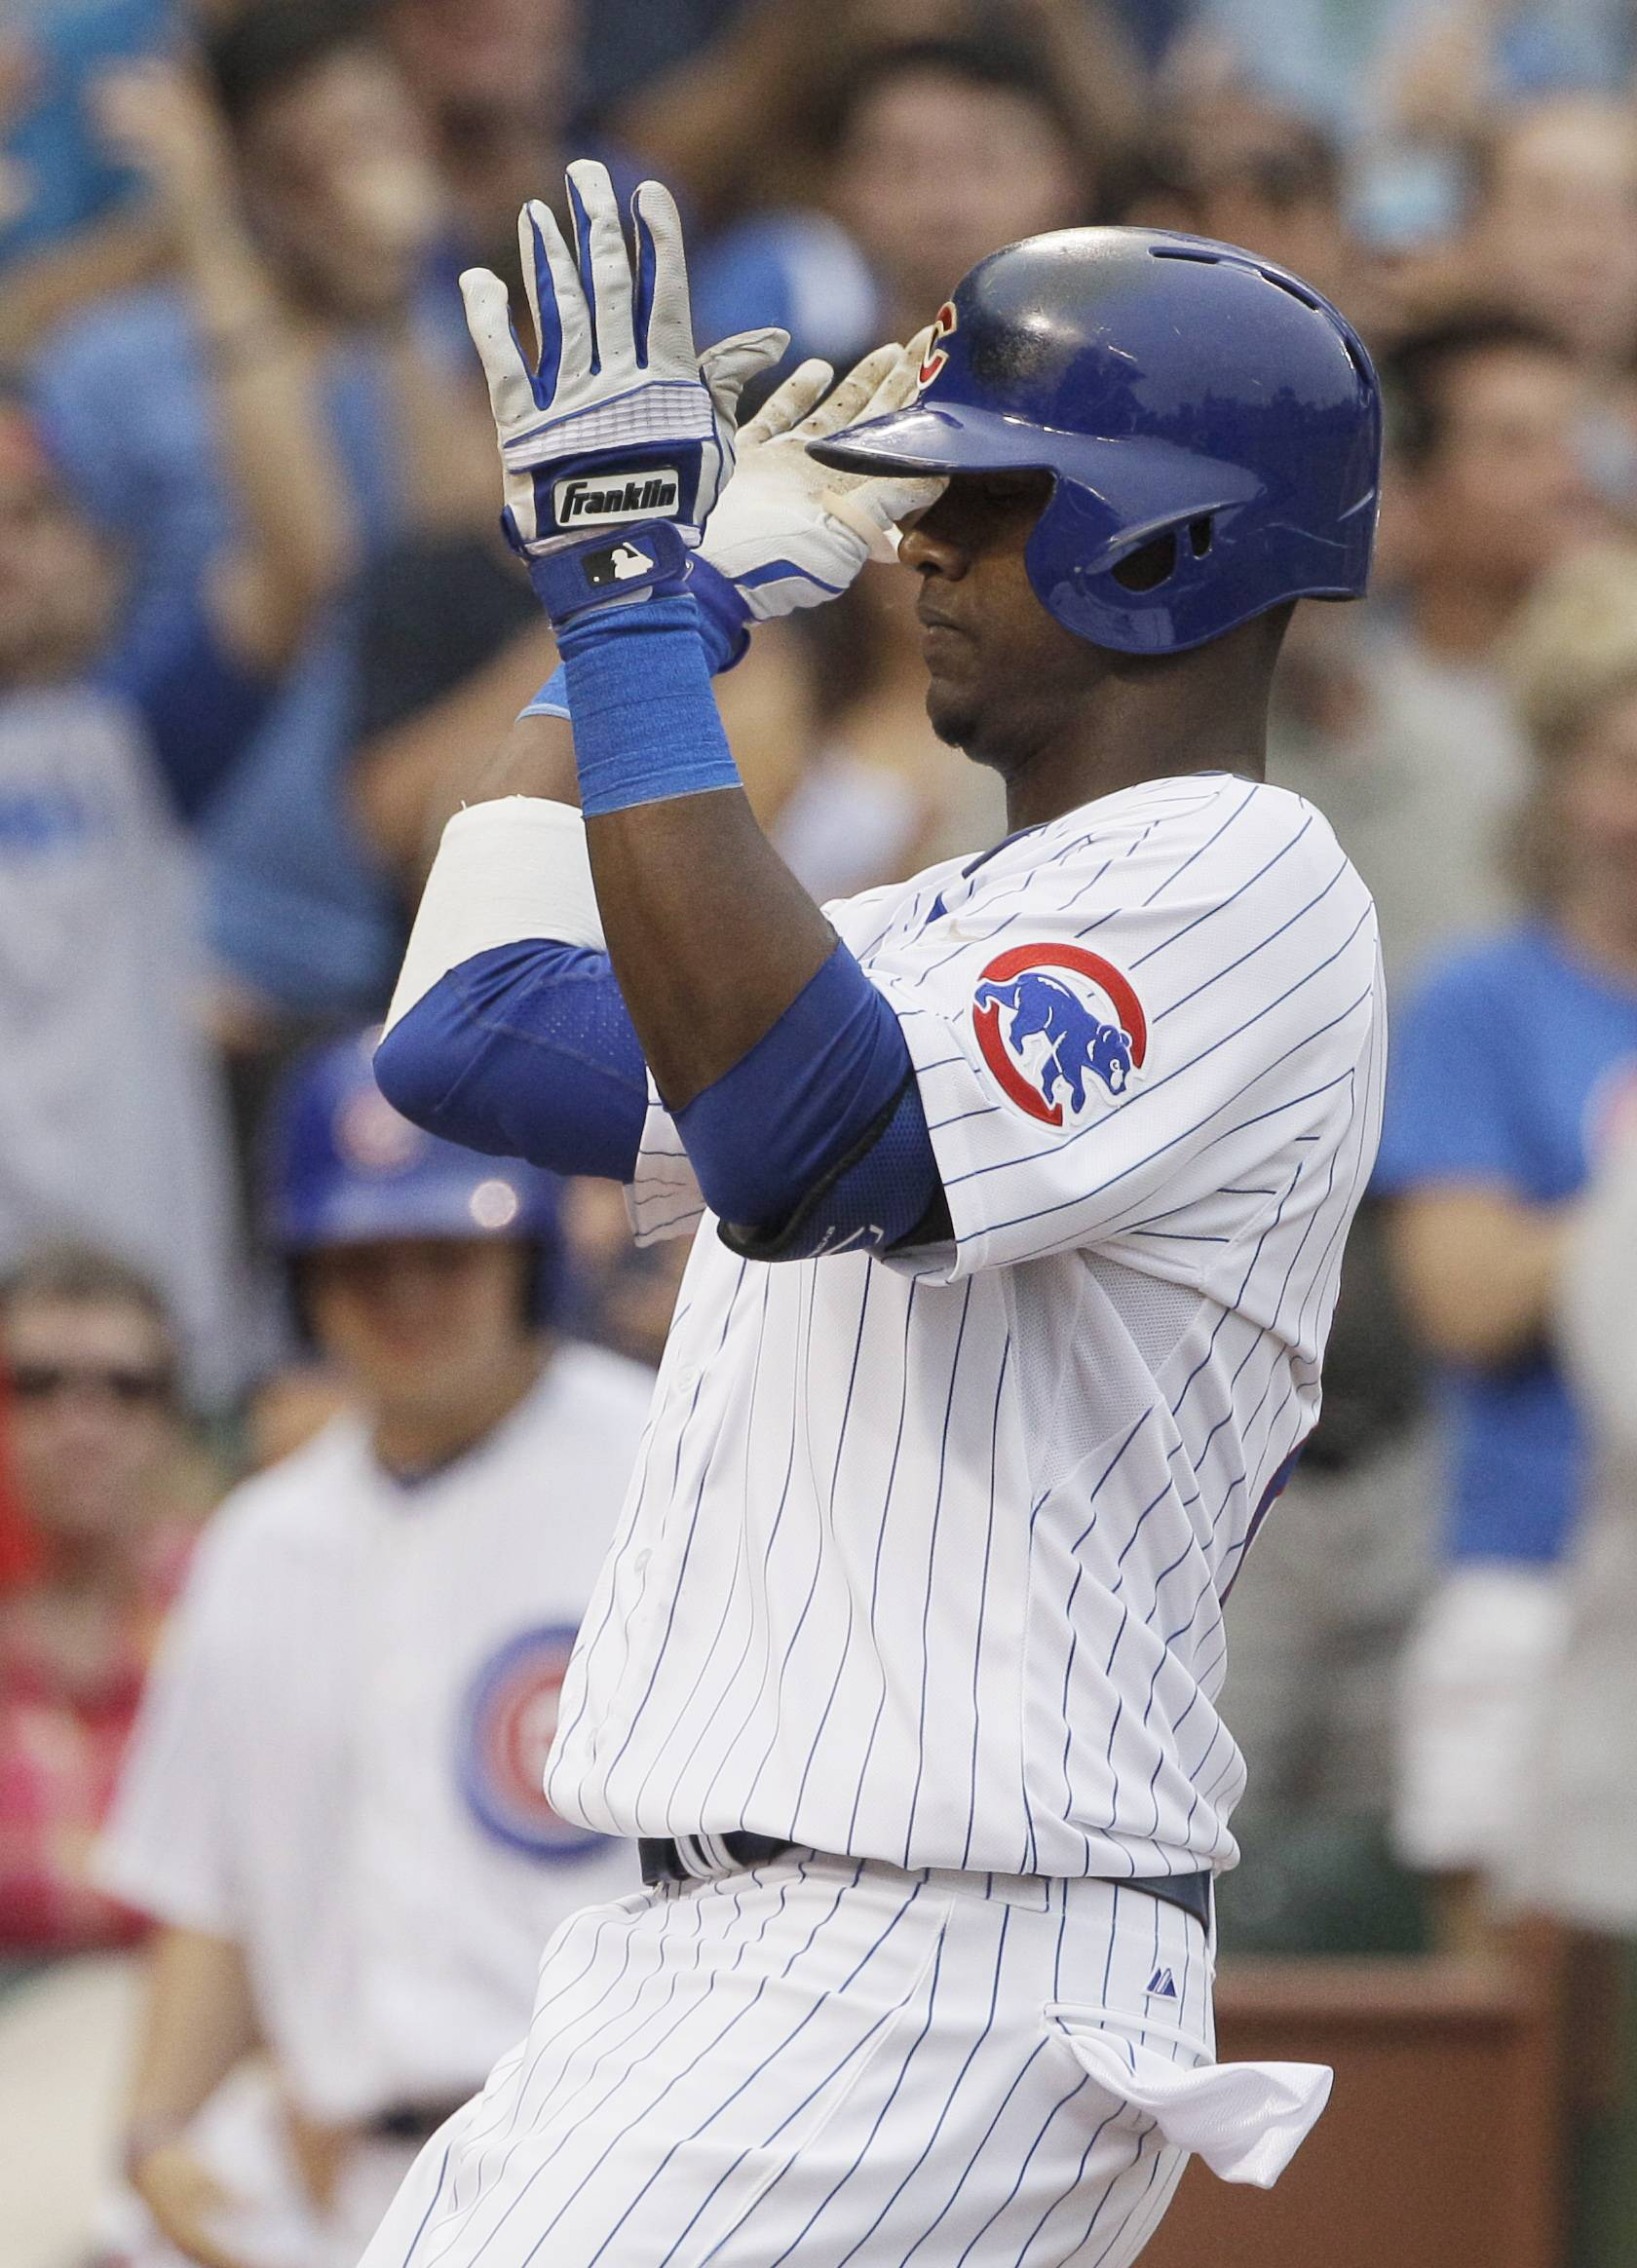 The Cubs' Junior Lake celebrates in the seventh inning after hitting his second solo home run in Saturday's victory over the Marlins at Wrigley Field.